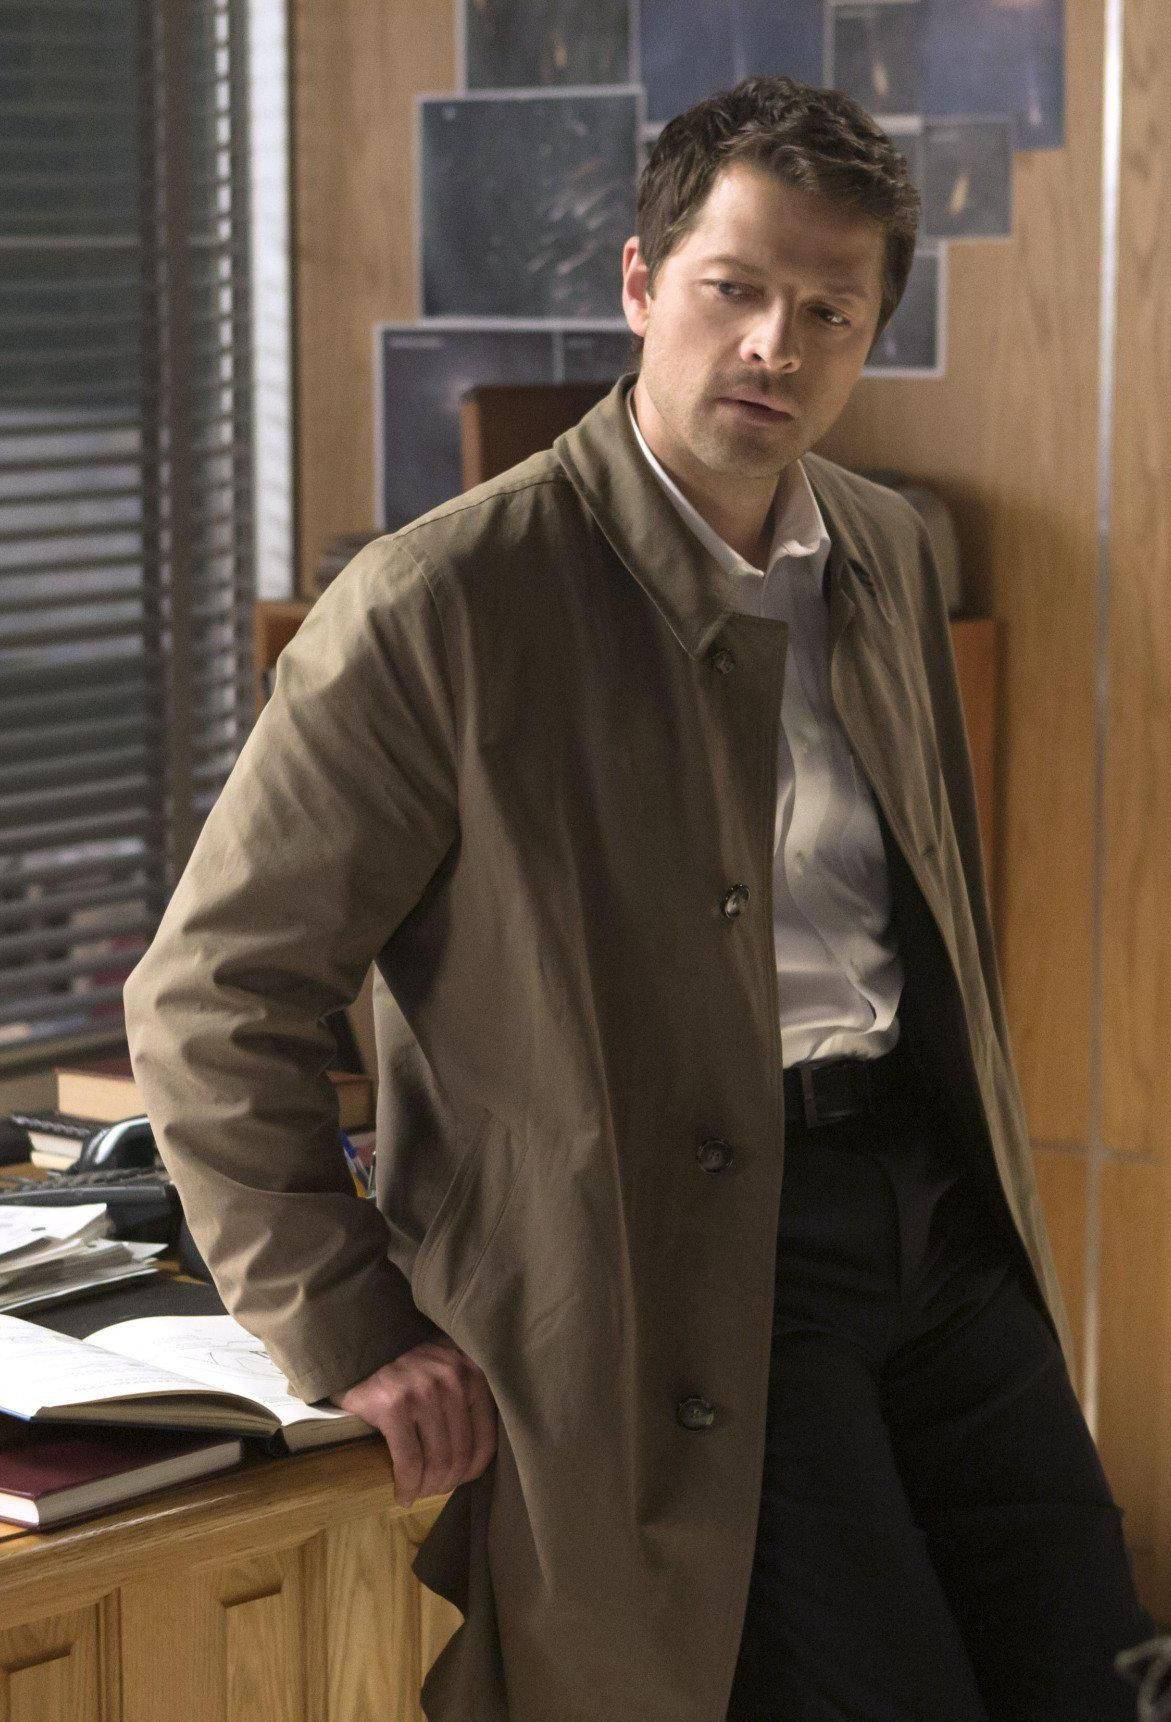 Castiel supernatural season 9 episode 21 king of the damned castiel supernatural season 9 episode 21 king of the damned voltagebd Image collections